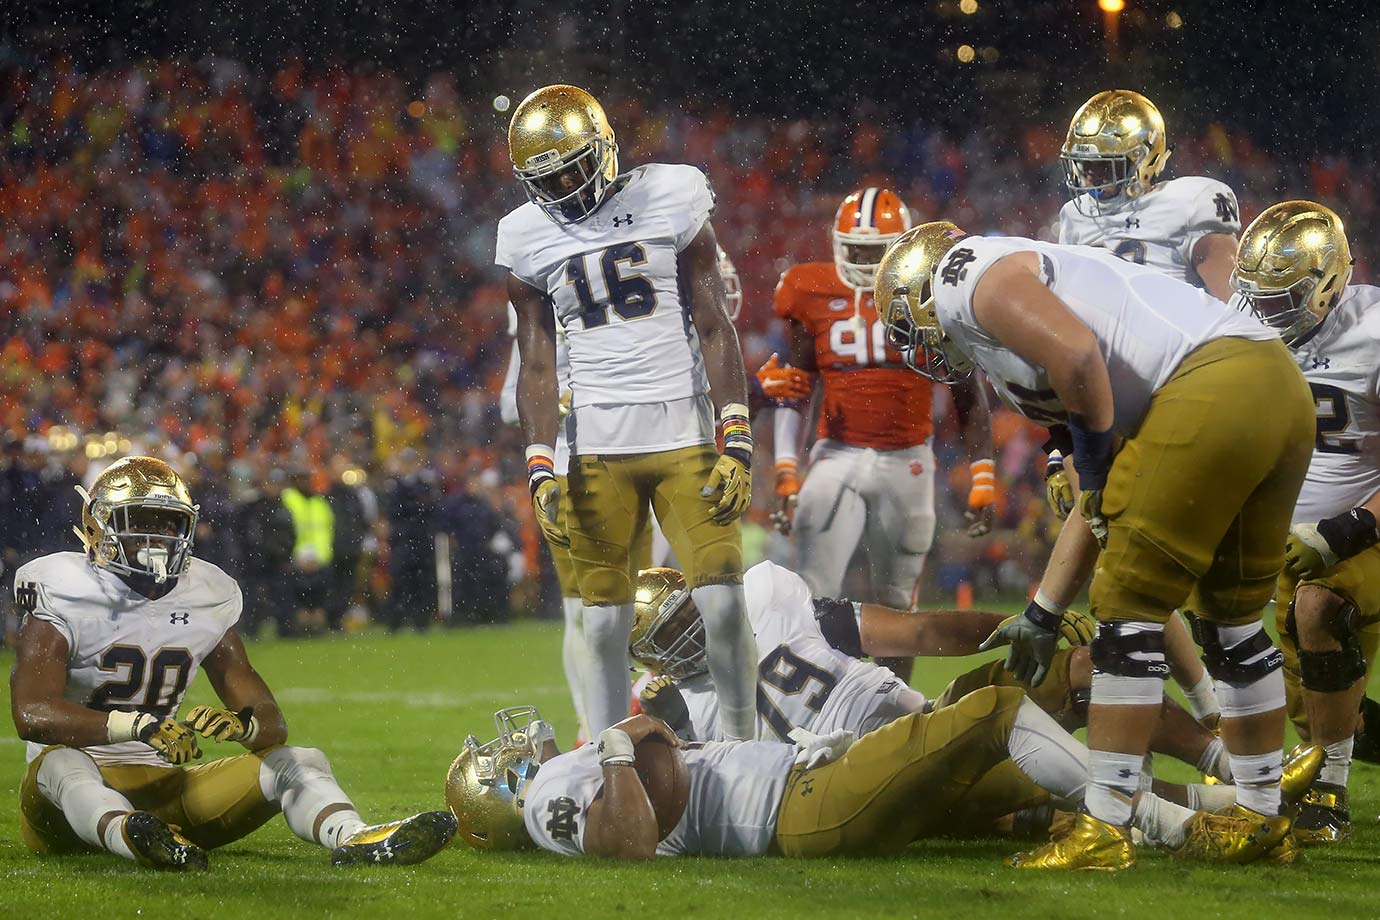 "Clemson solidified its status as a playoff contender by surviving Notre Dame—and hurricane-like elements—in a soggy Death Valley. The Fighting Irish whittled the Tigers' 17-point, fourth-quarter lead to two on a Deshone Kizer touchdown pass with seven seconds to play. But defensive tackle Carlos Watkins stuffed Kizer on Notre Dame's two-point conversion attempt, maintaining Clemson's unblemished record. As coach Dabo Swinney bellowed in his postgame interview, it was a ""Bring your own guts"" victory."